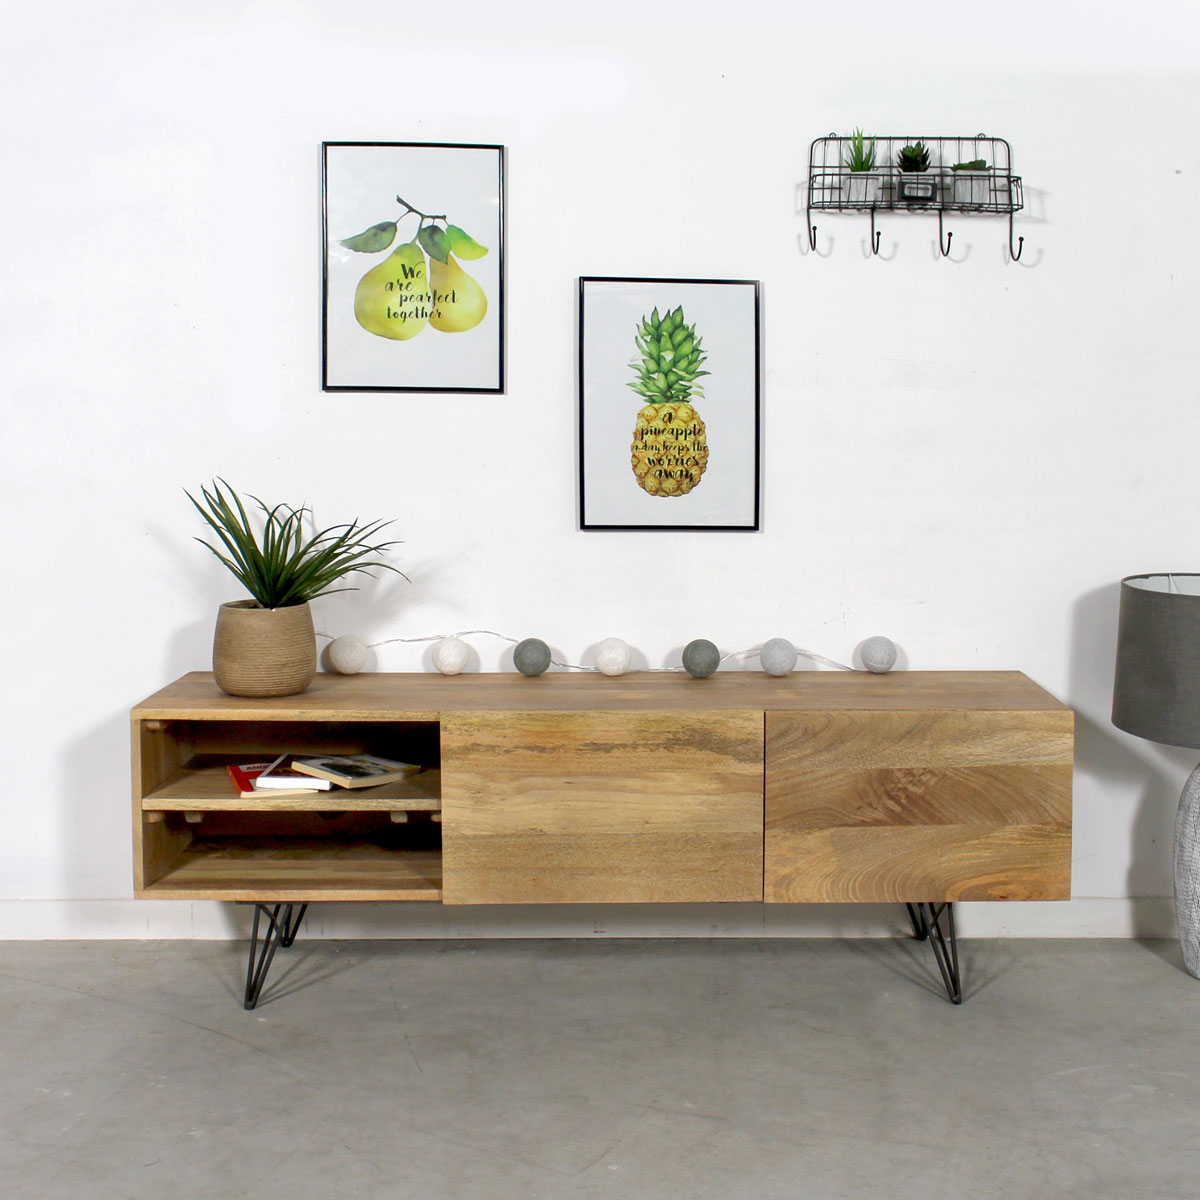 Made in meubles meuble industriel bois massif meuble scandinave - Meuble colore ...